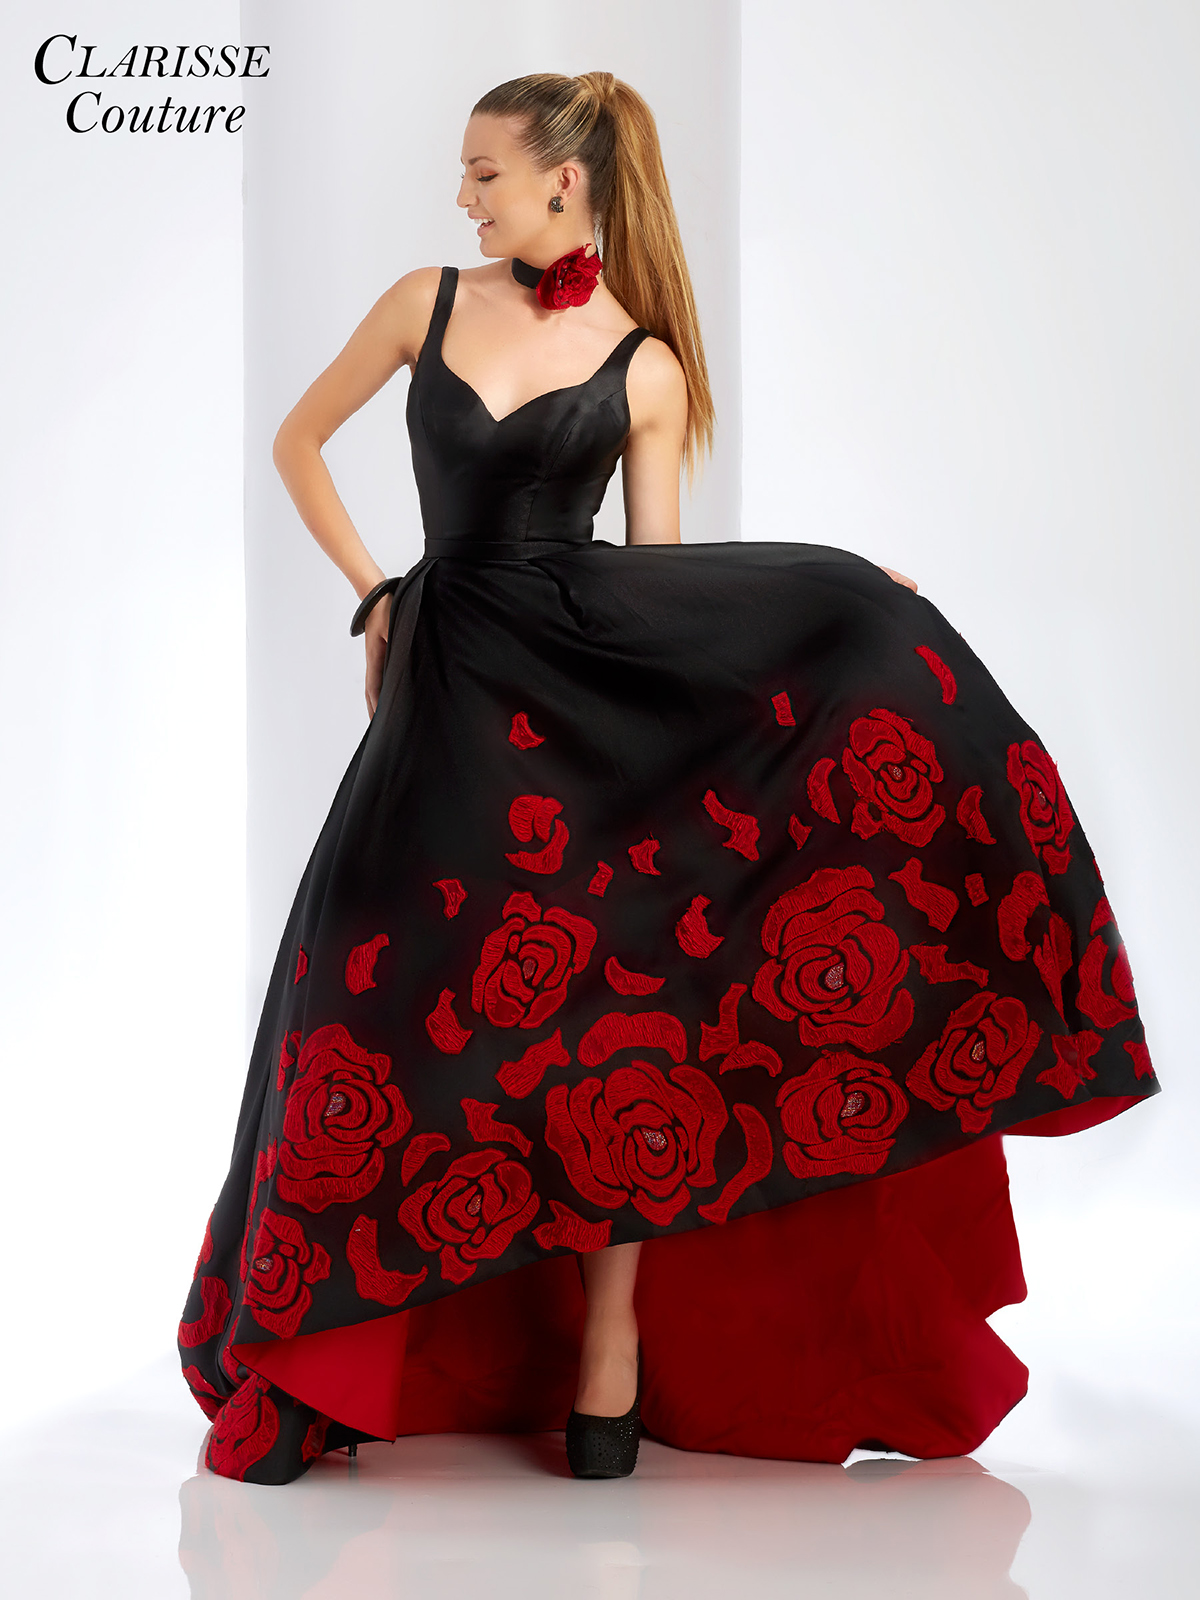 2018 prom dress clarisse 4943 promgirl red rose high low evening gown 4943 ombrellifo Choice Image